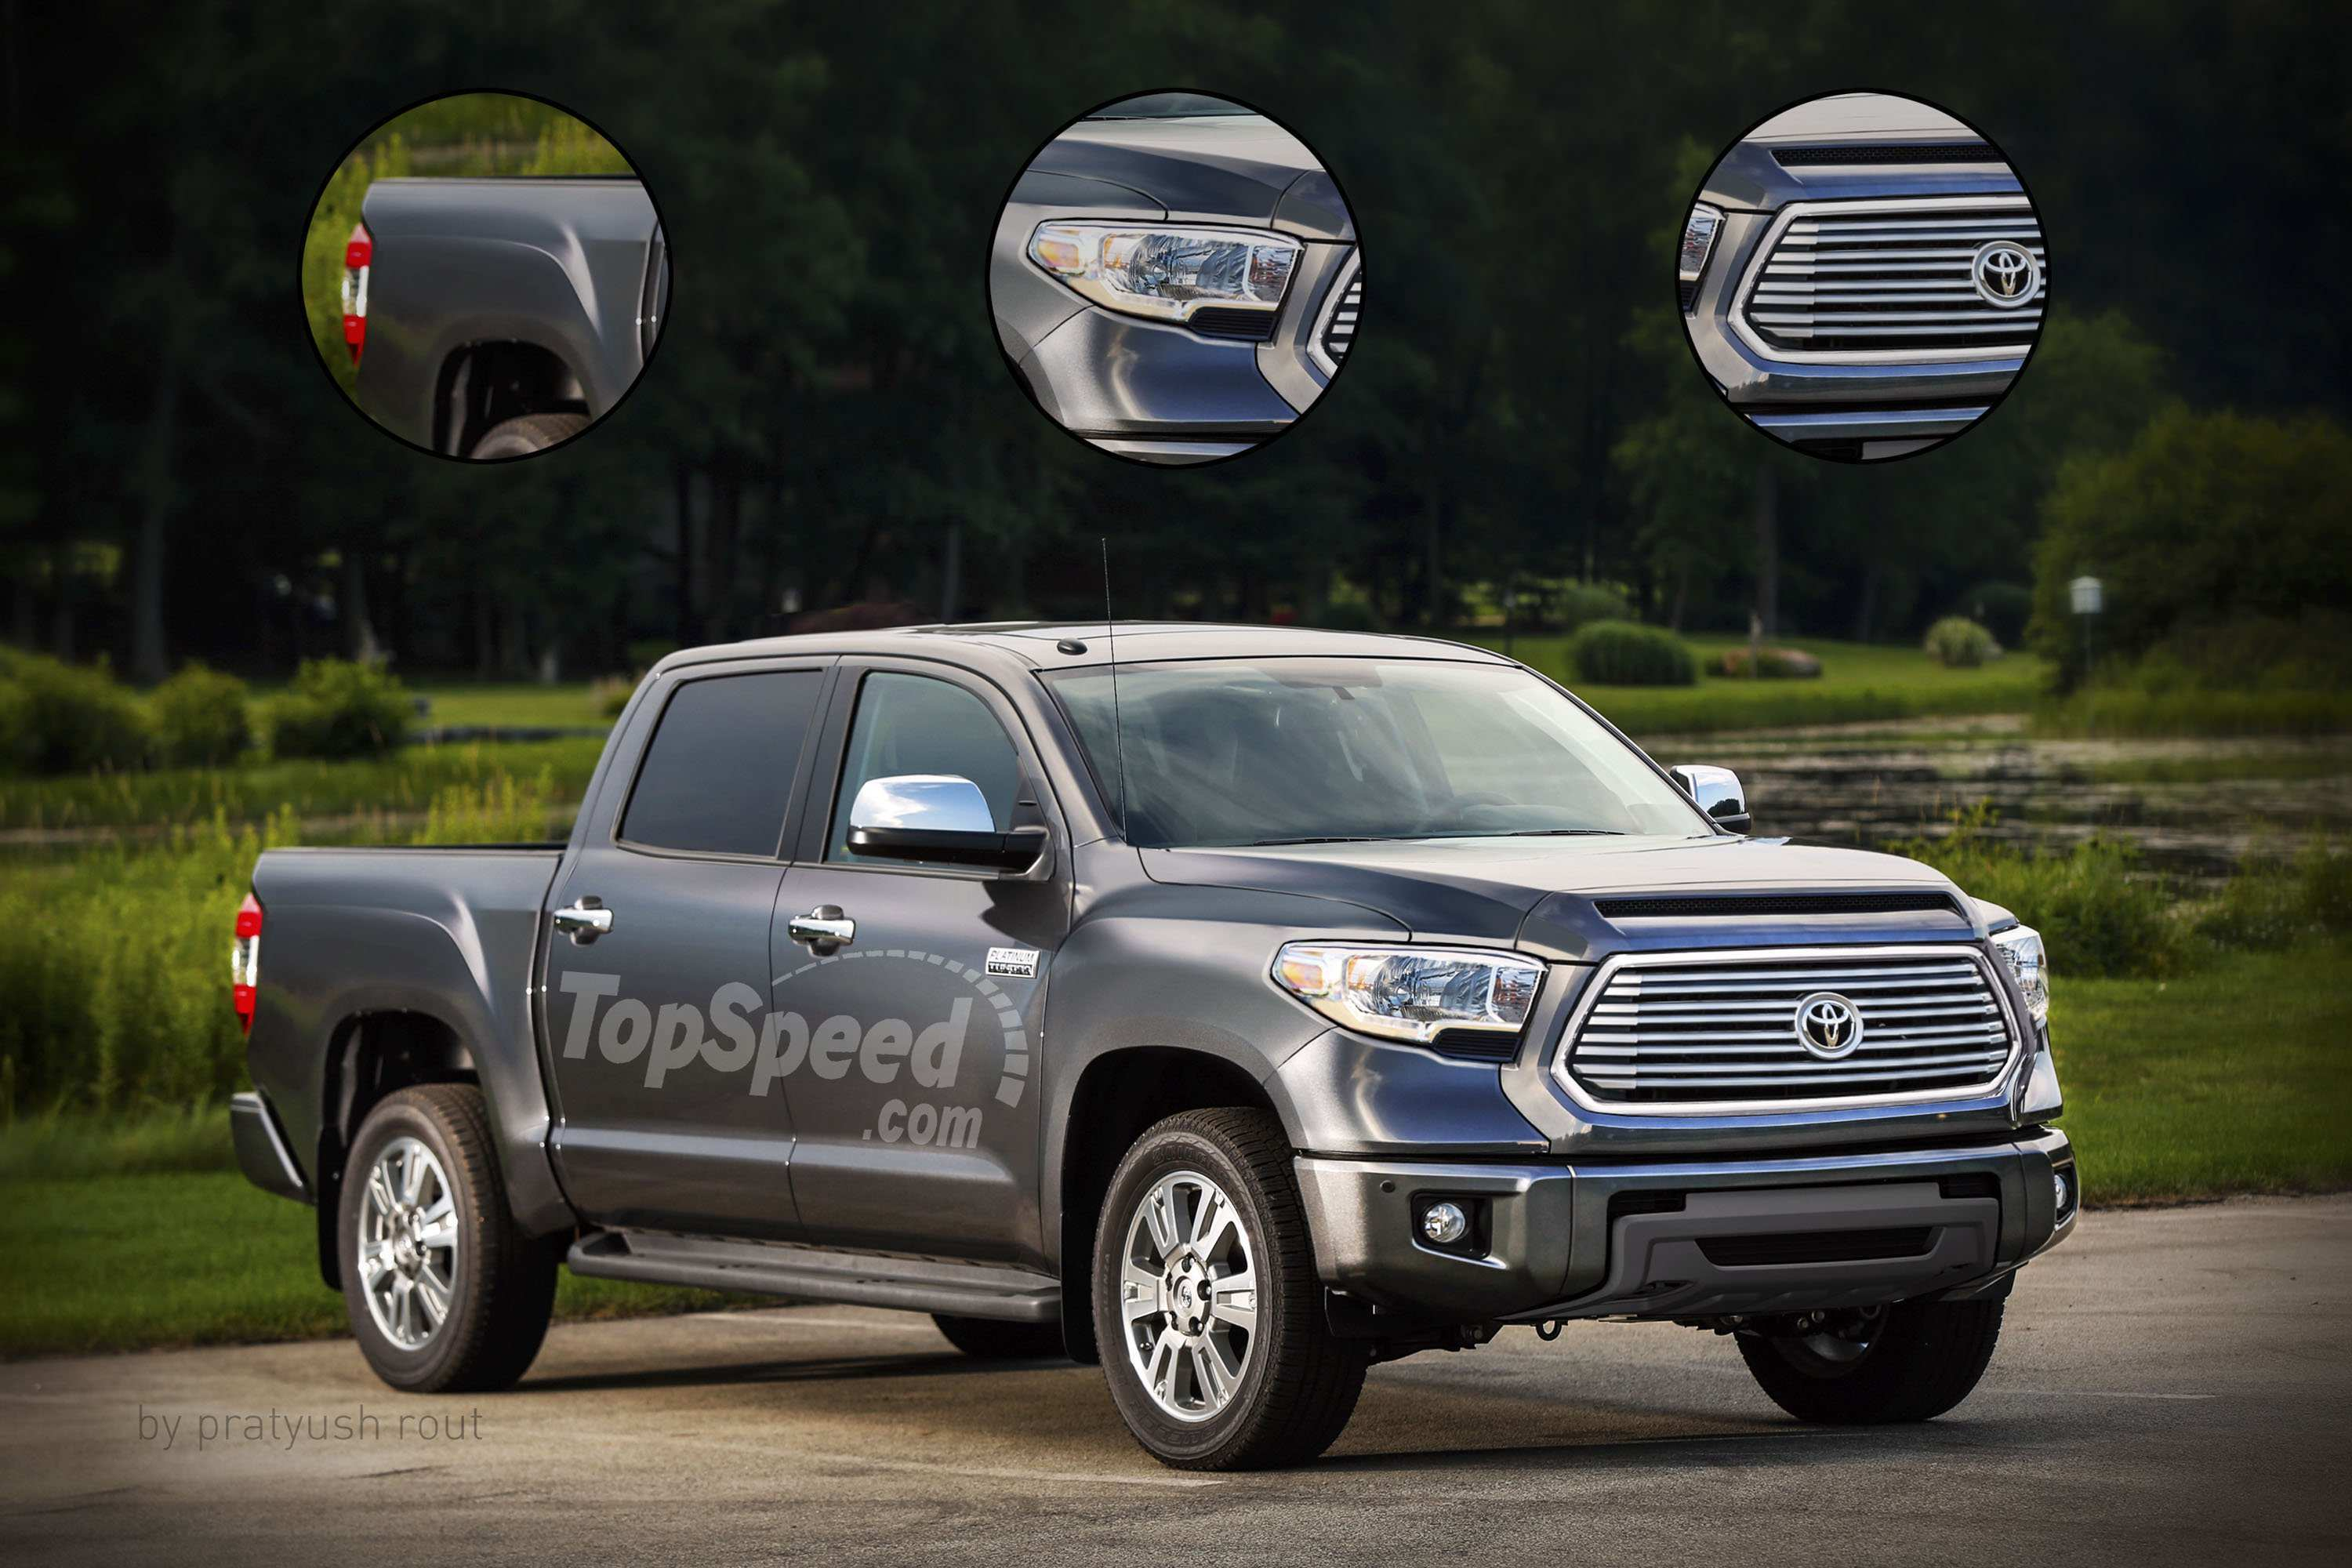 53 Gallery of 2020 Toyota Sequoia Spy Exteriors Review with 2020 Toyota Sequoia Spy Exteriors